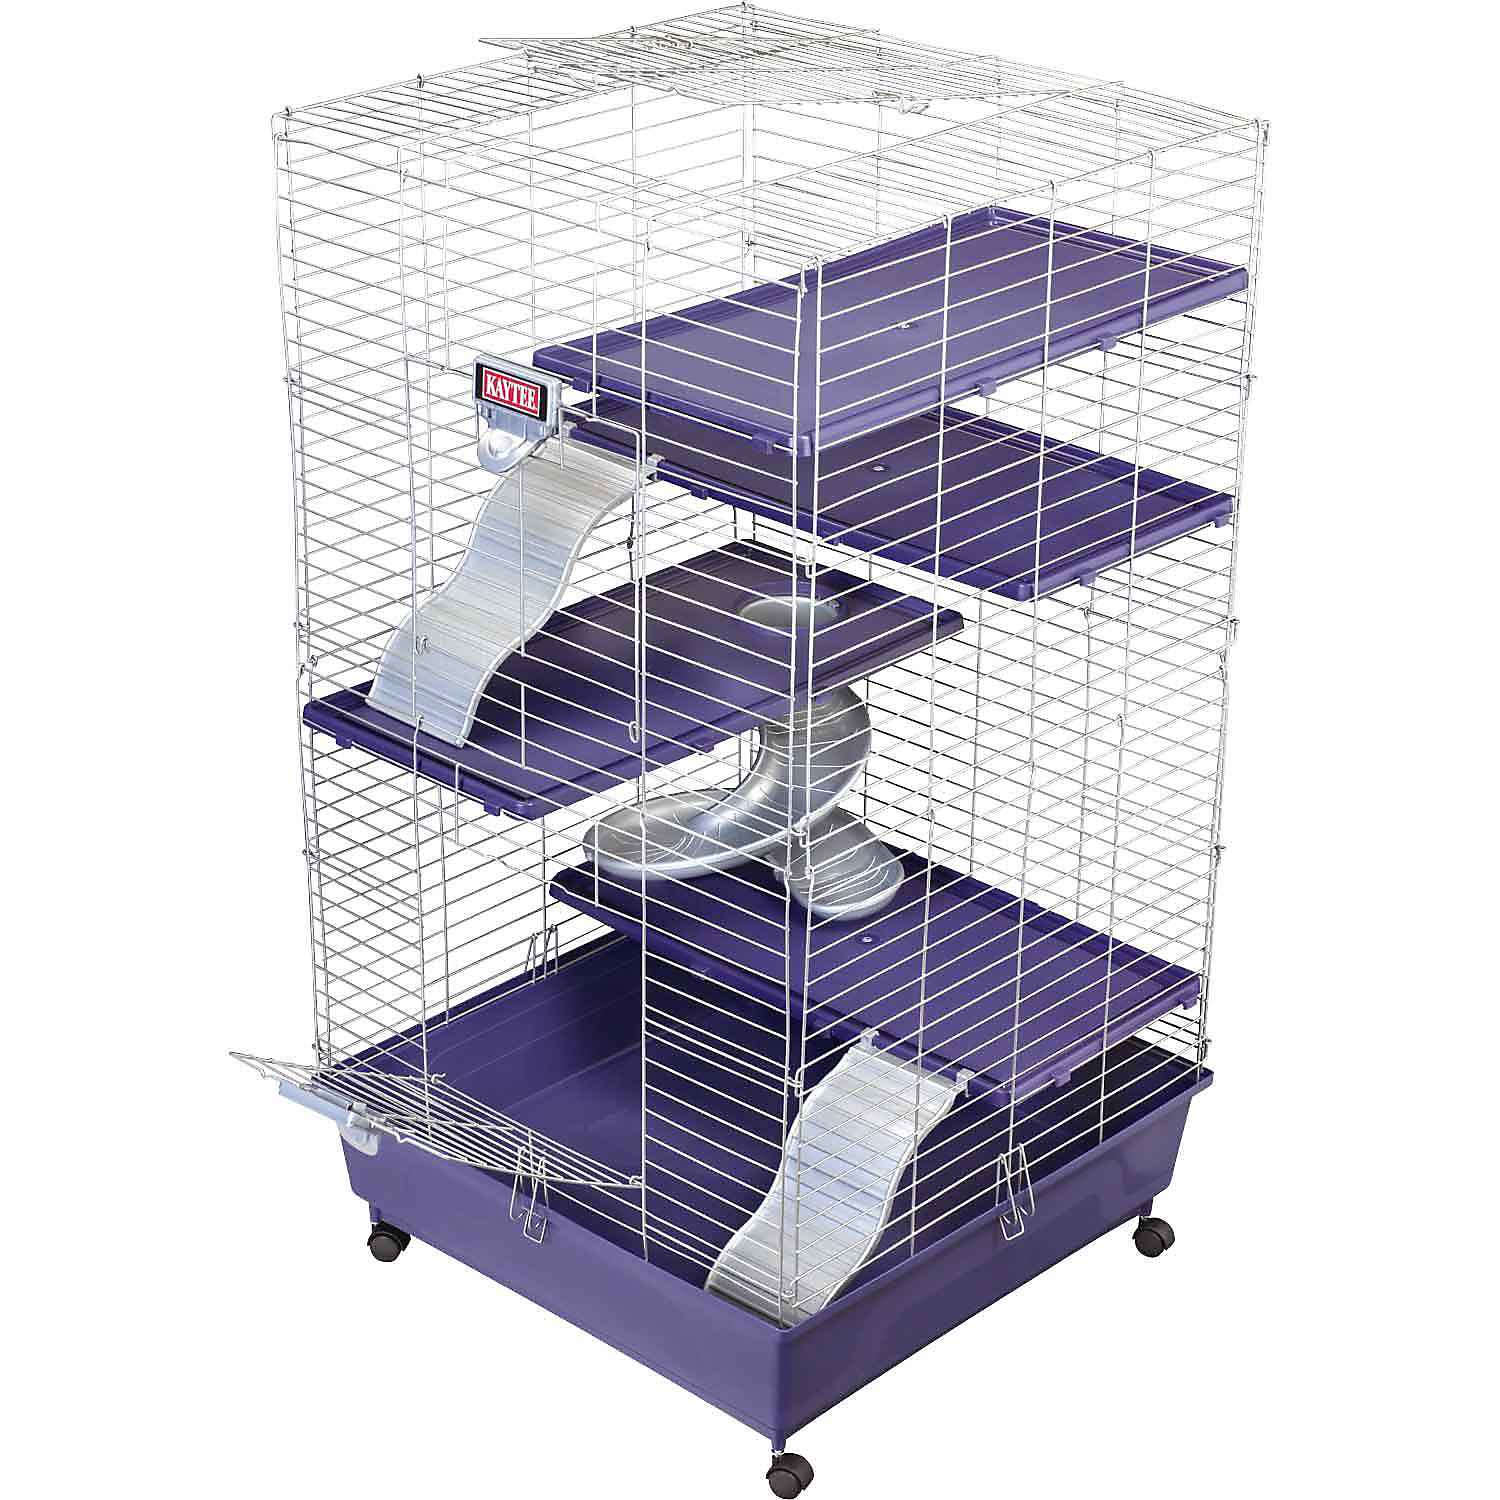 Kaytee Ferret Home Plus 24 L X 24 W X 41.5 H 24 IN Purple